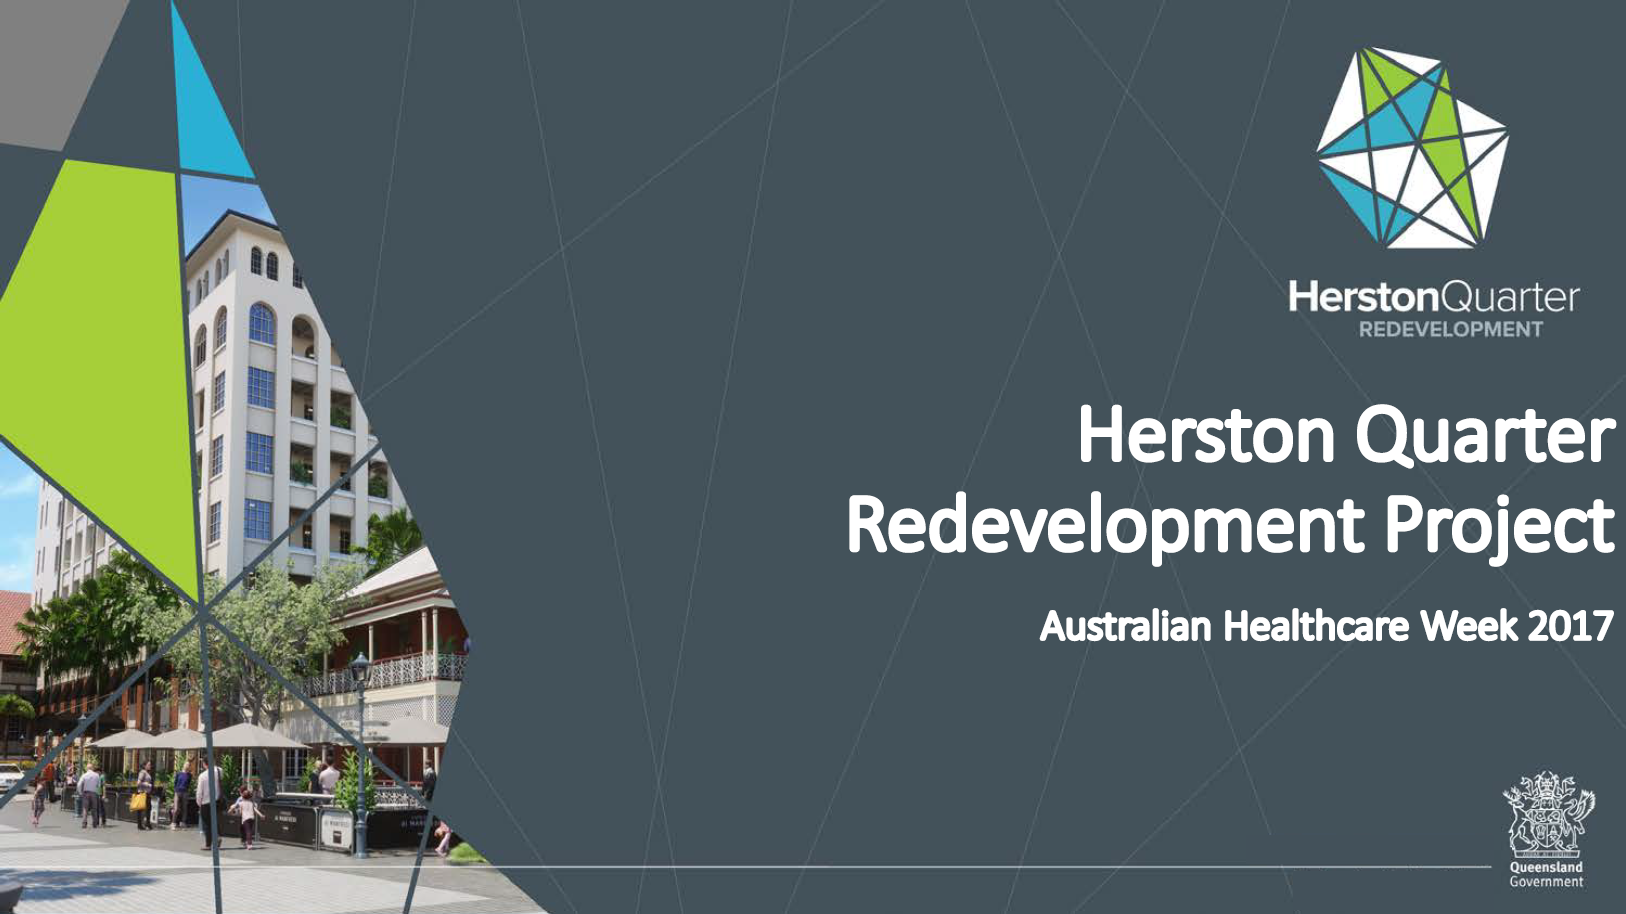 The Herston Quarter Redevelopment Project: Delivering a World-Class Health, Retail and Biomedical Precinct